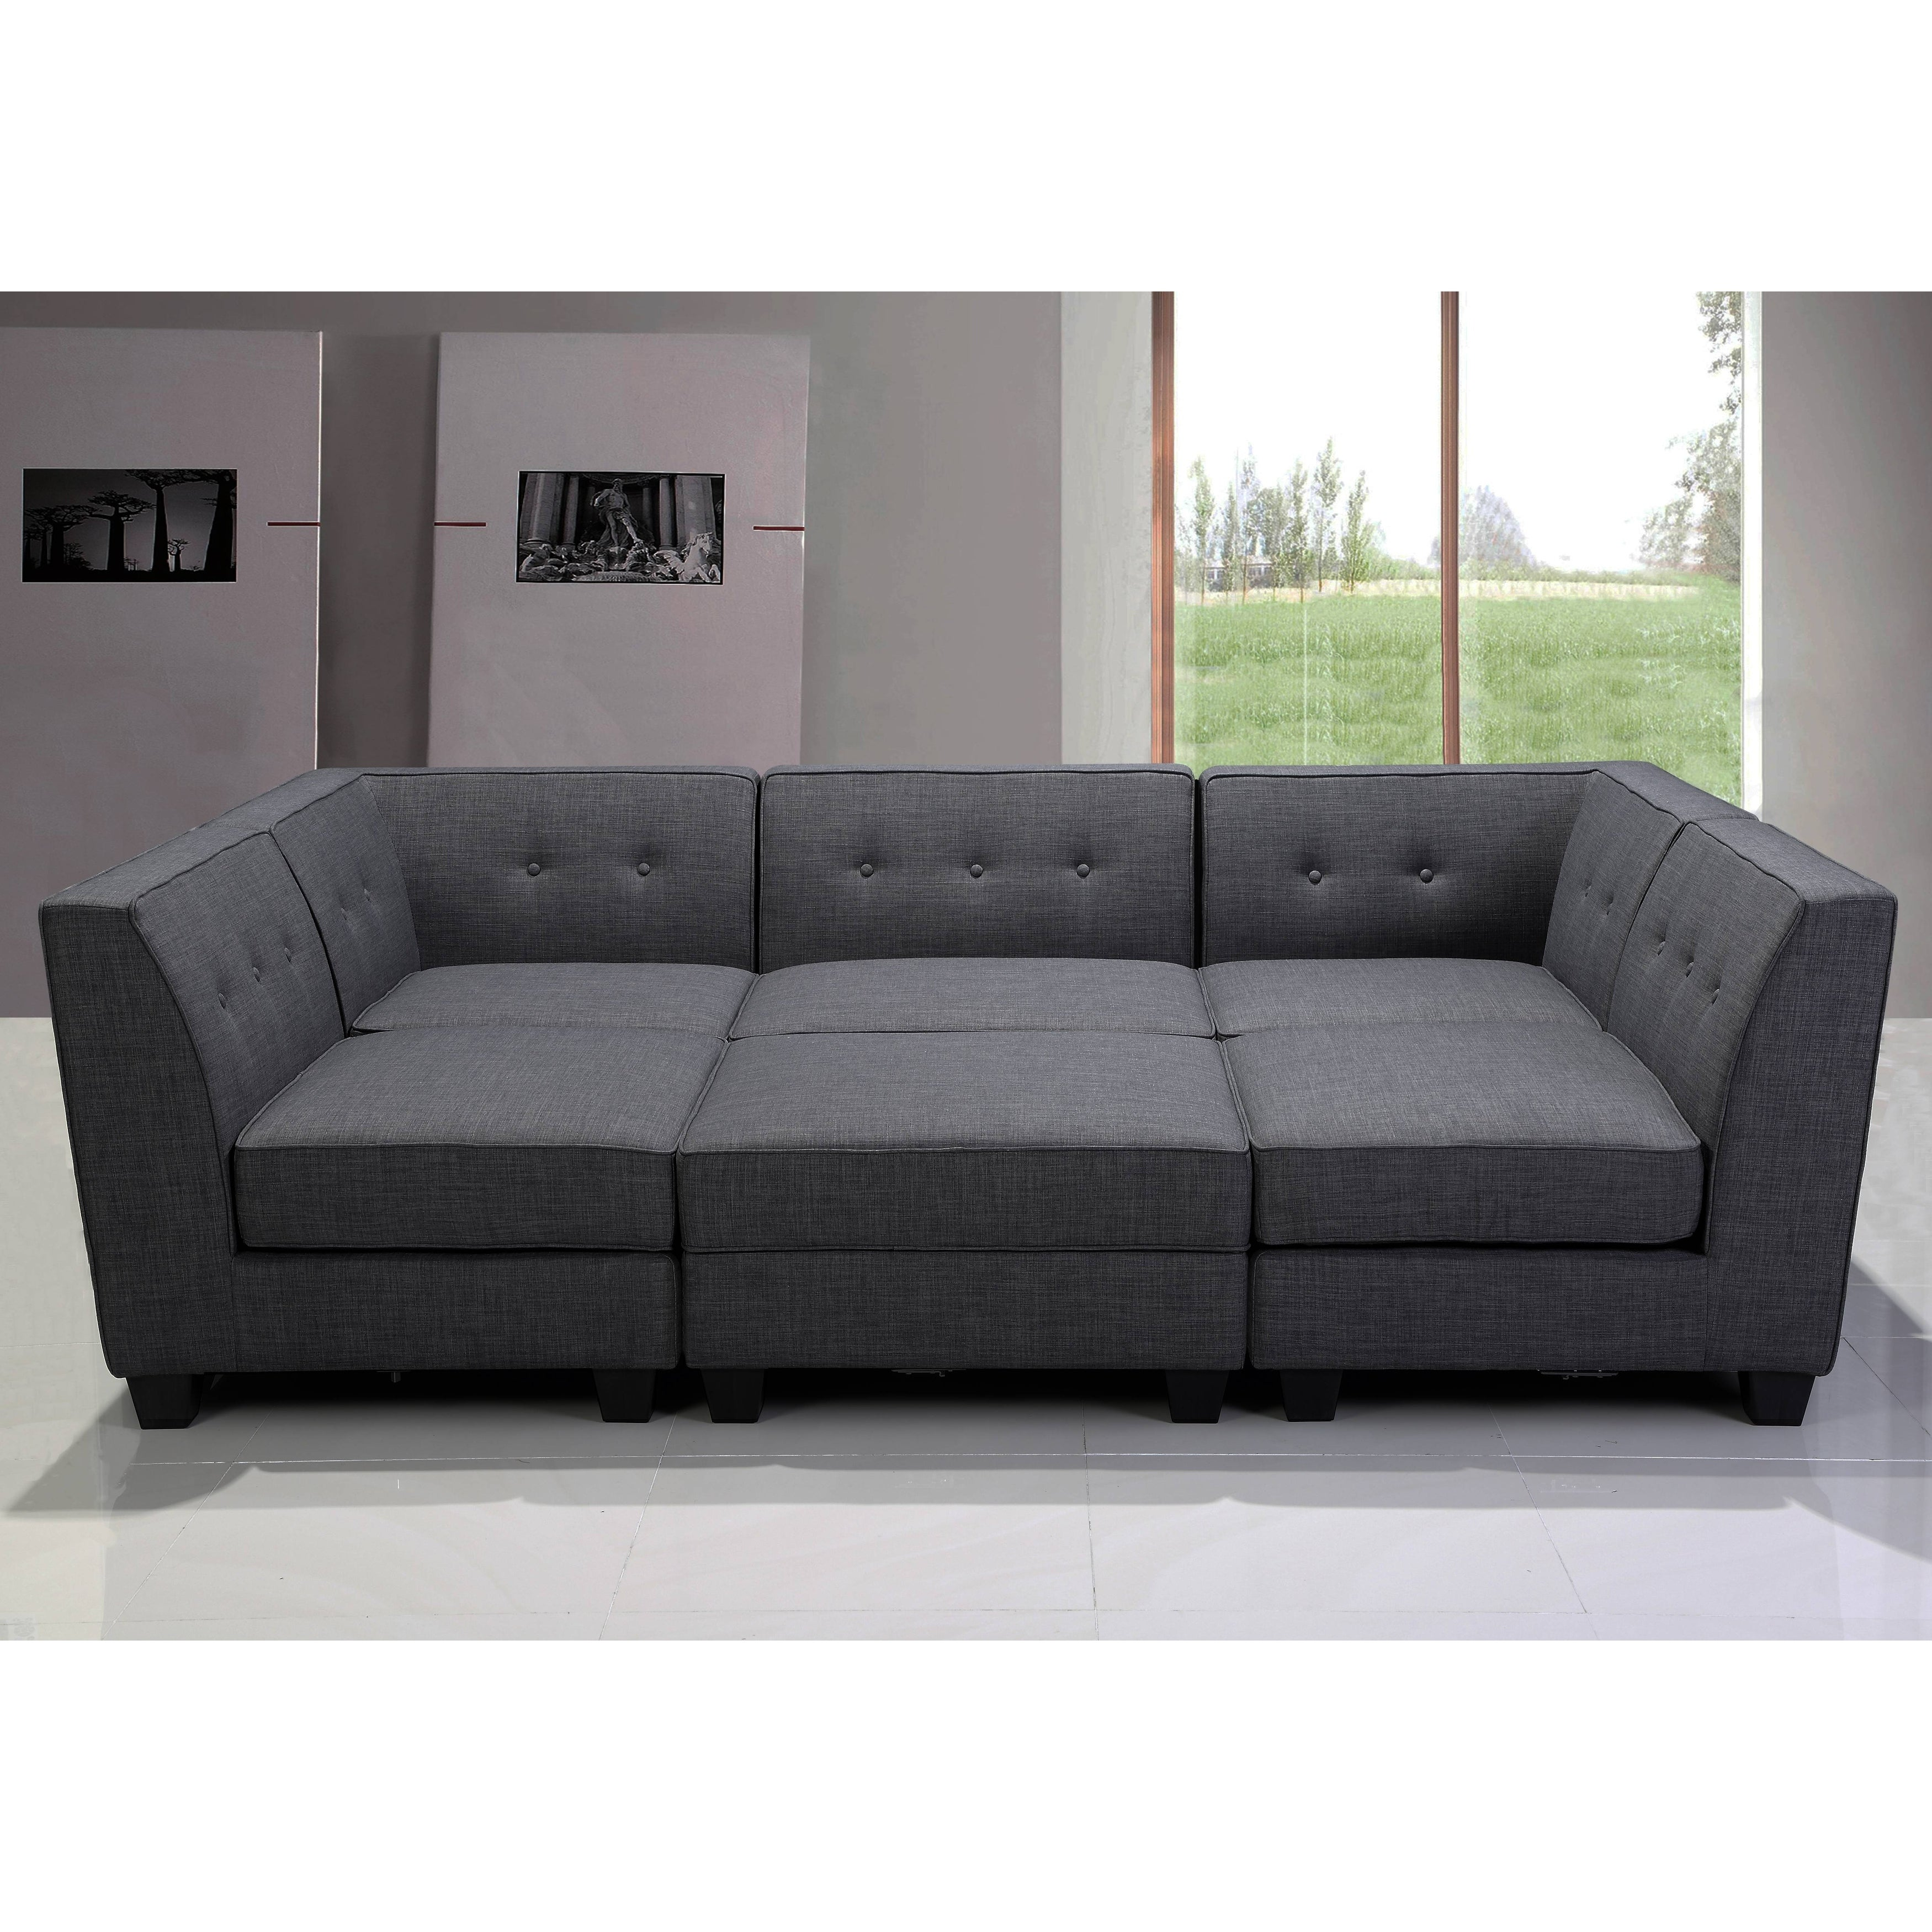 Modular Sectional Sofa Pieces 6 Piece Modular Fabric